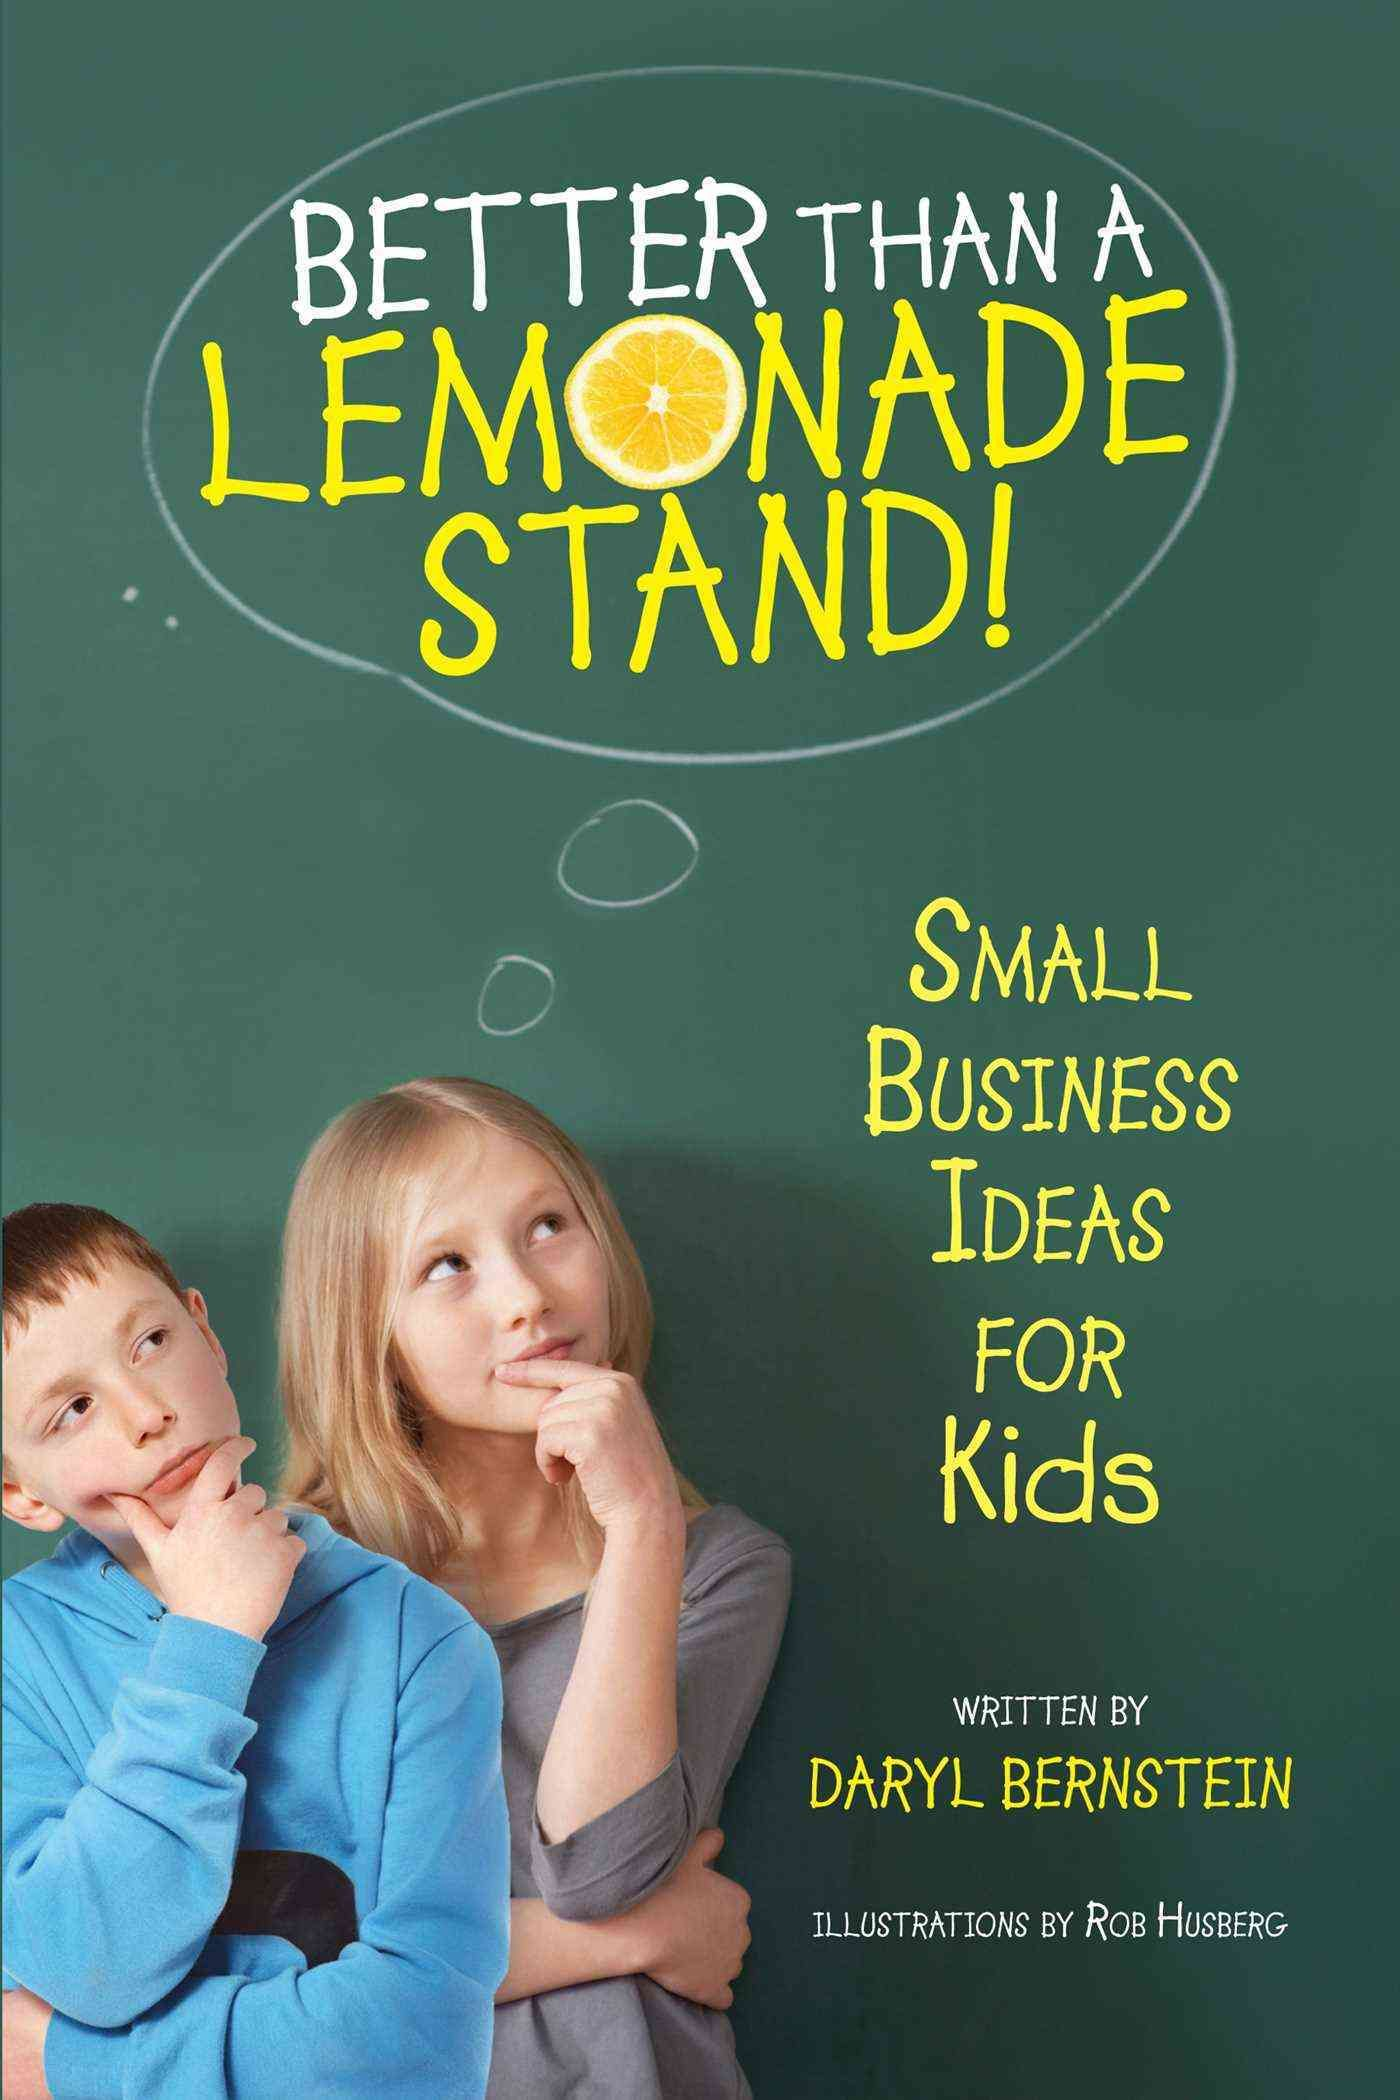 Better Than a Lemonade Stand! Small Business Ideas for